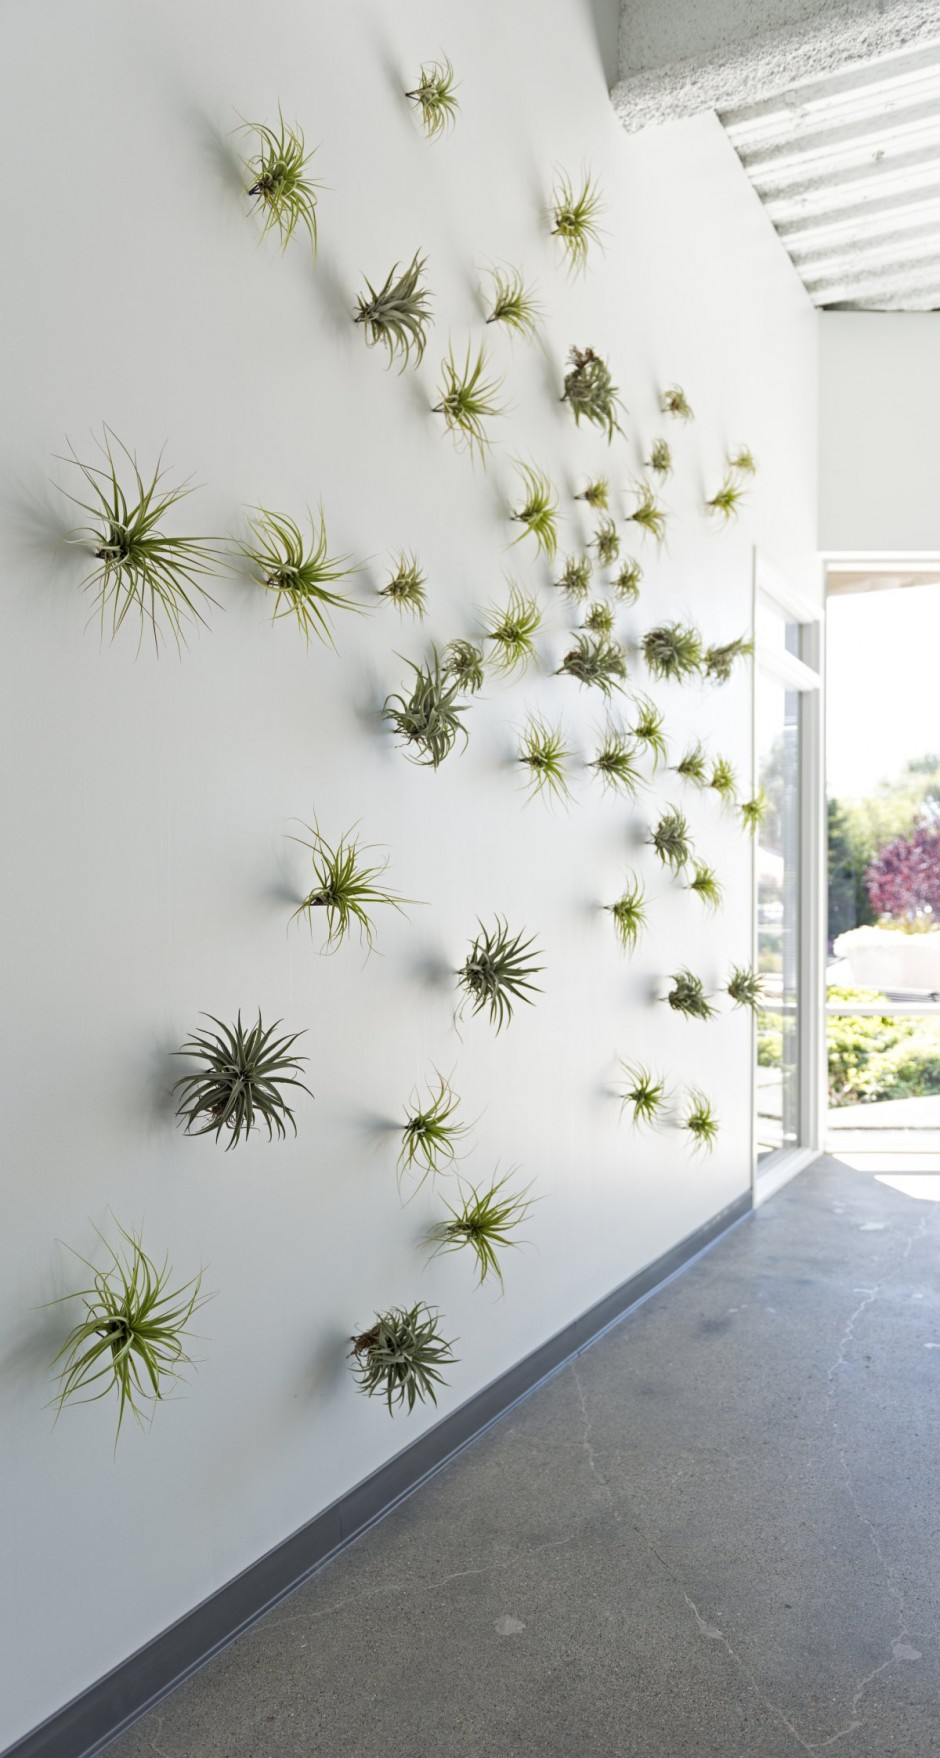 Plant Wall Detail - Evernote office interiors